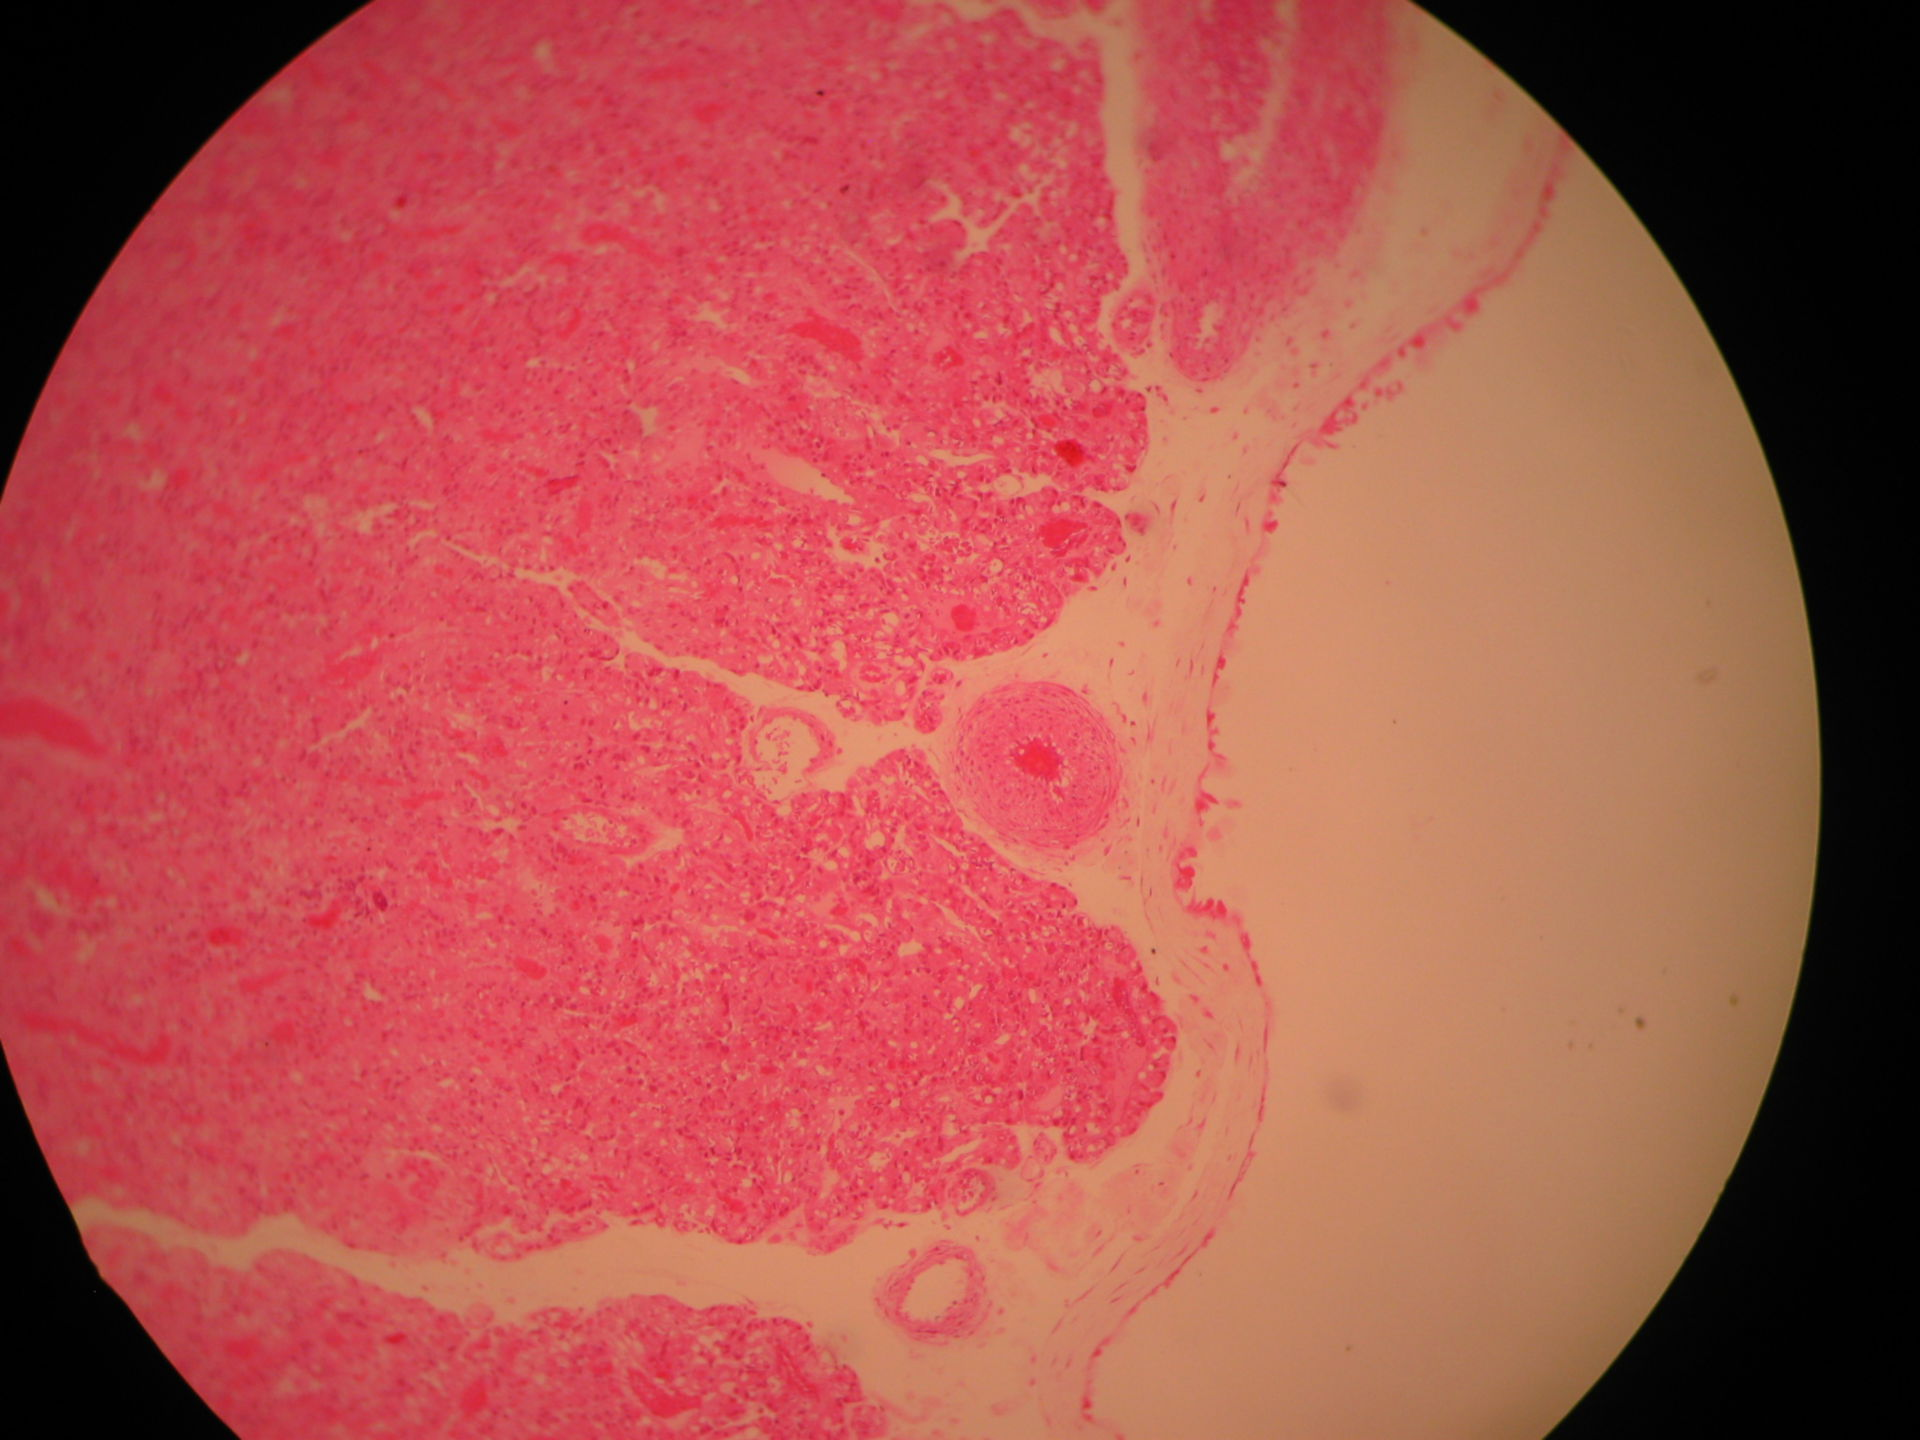 Veterinary medicine: Cross-section Placenta of a dog (12) - Chorion Plate